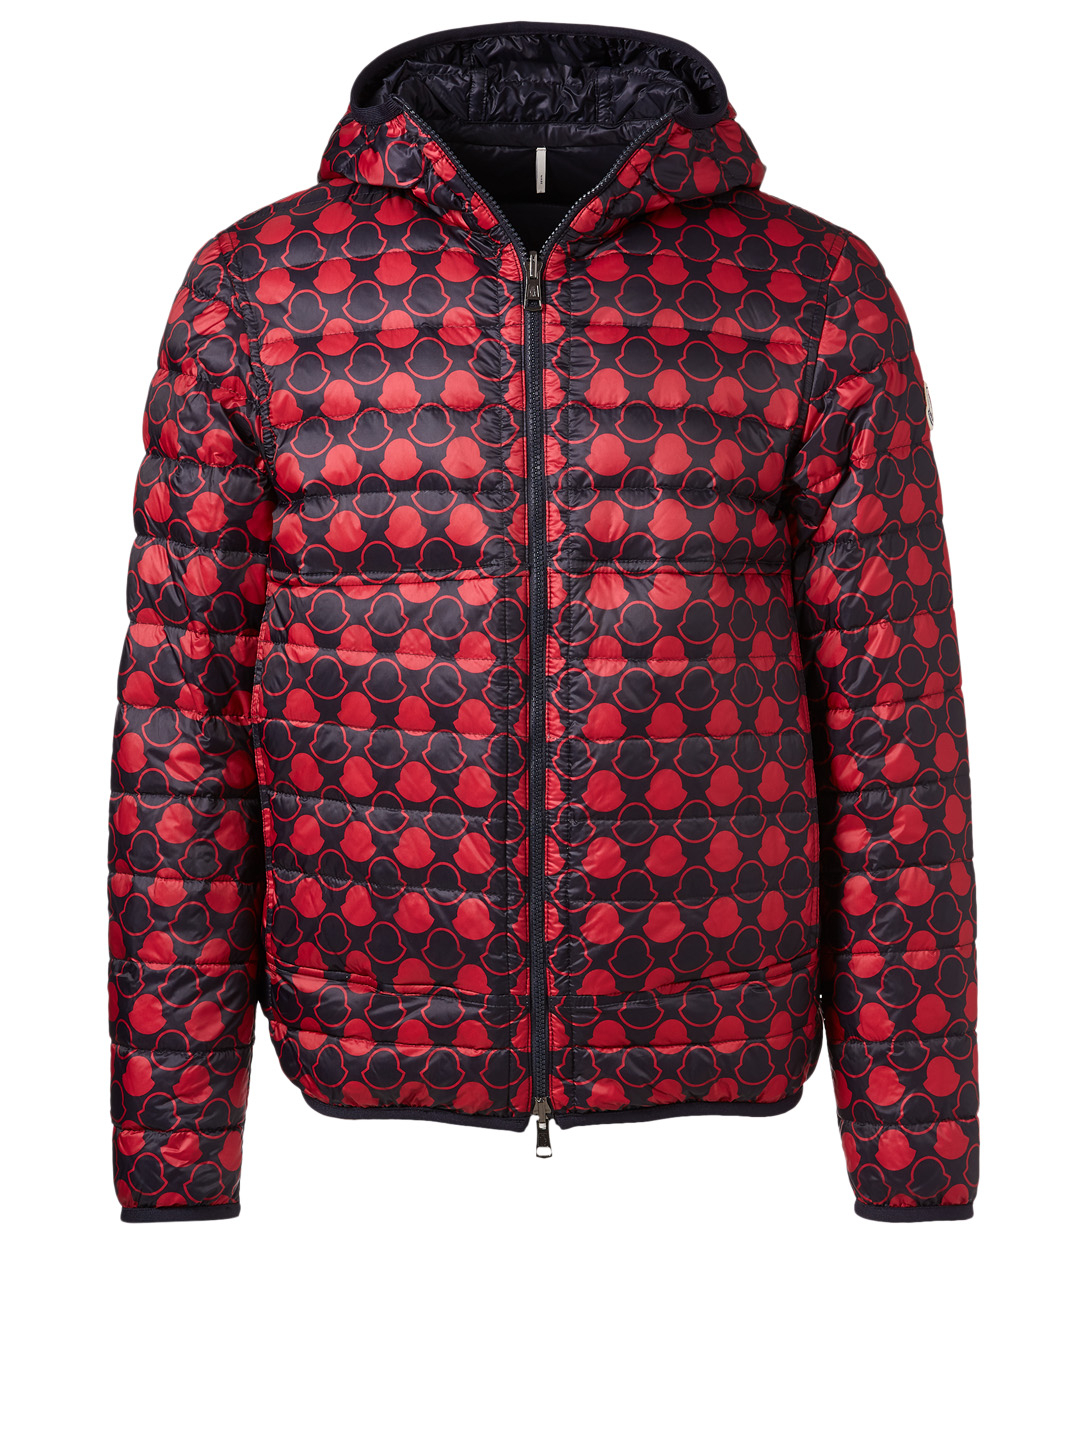 MONCLER Oise Reversible Down Jacket Men's Multi